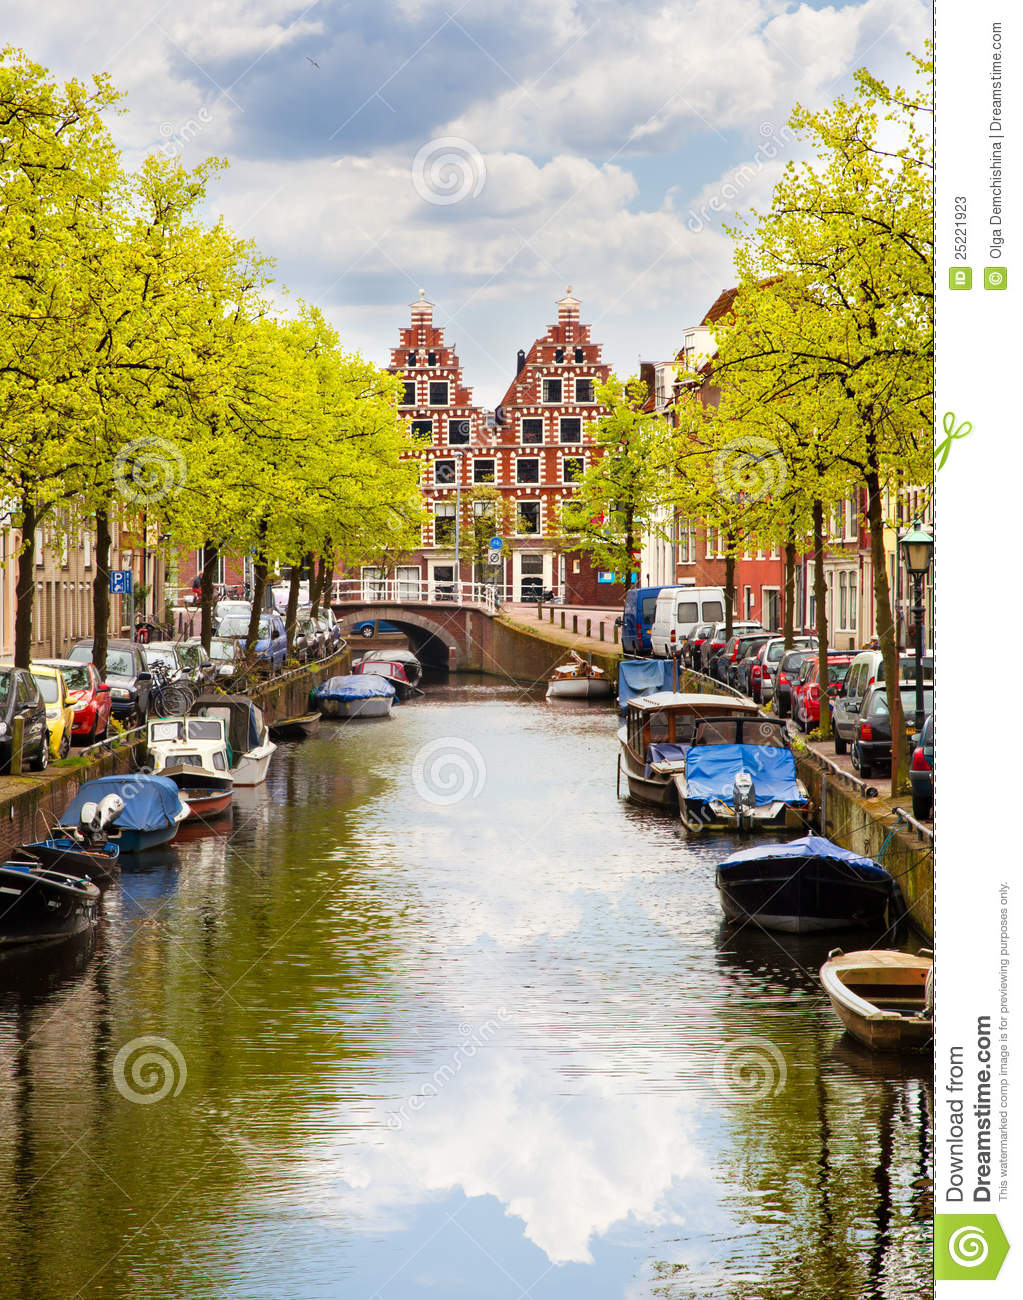 Canal Of Haarlem, Netherlands Stock Image - Image: 25221923